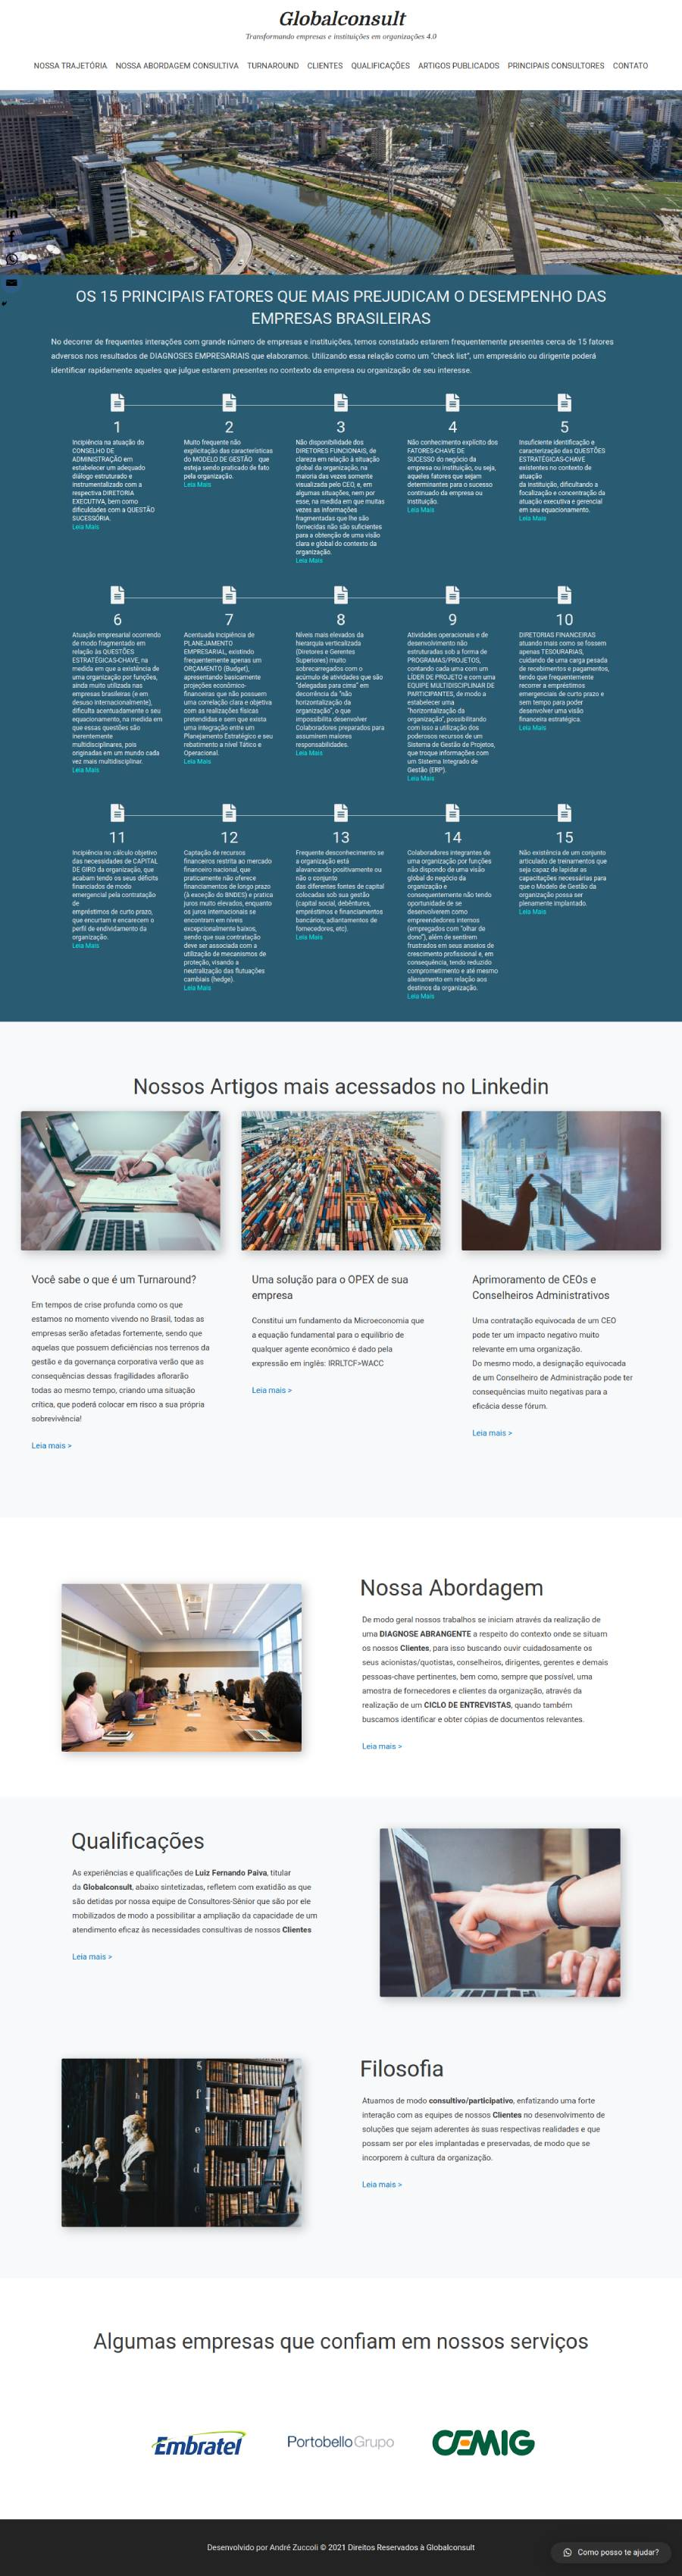 goFullPage-globalconsult